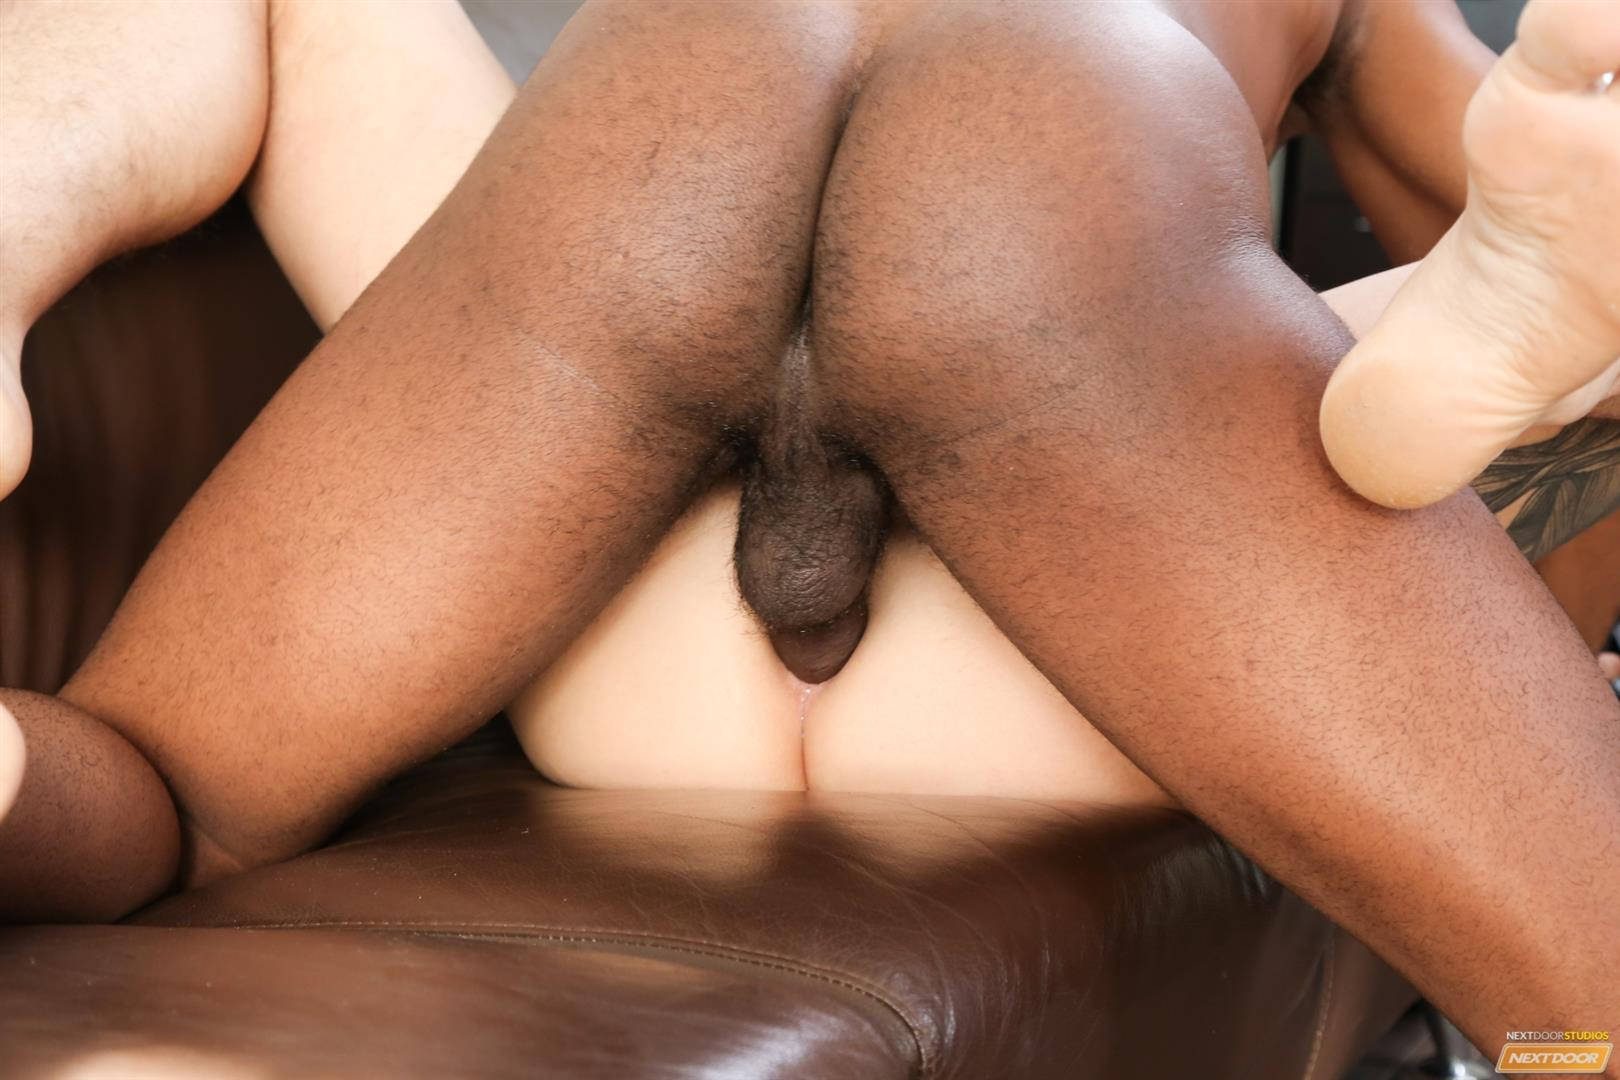 Next-Door-Ebony-XL-and-Beau-Reed-Interracial-bareback-fucking-big-black-cock-14 Bareback Flip Fucking With A Big Black Cock And A Hot White Ass